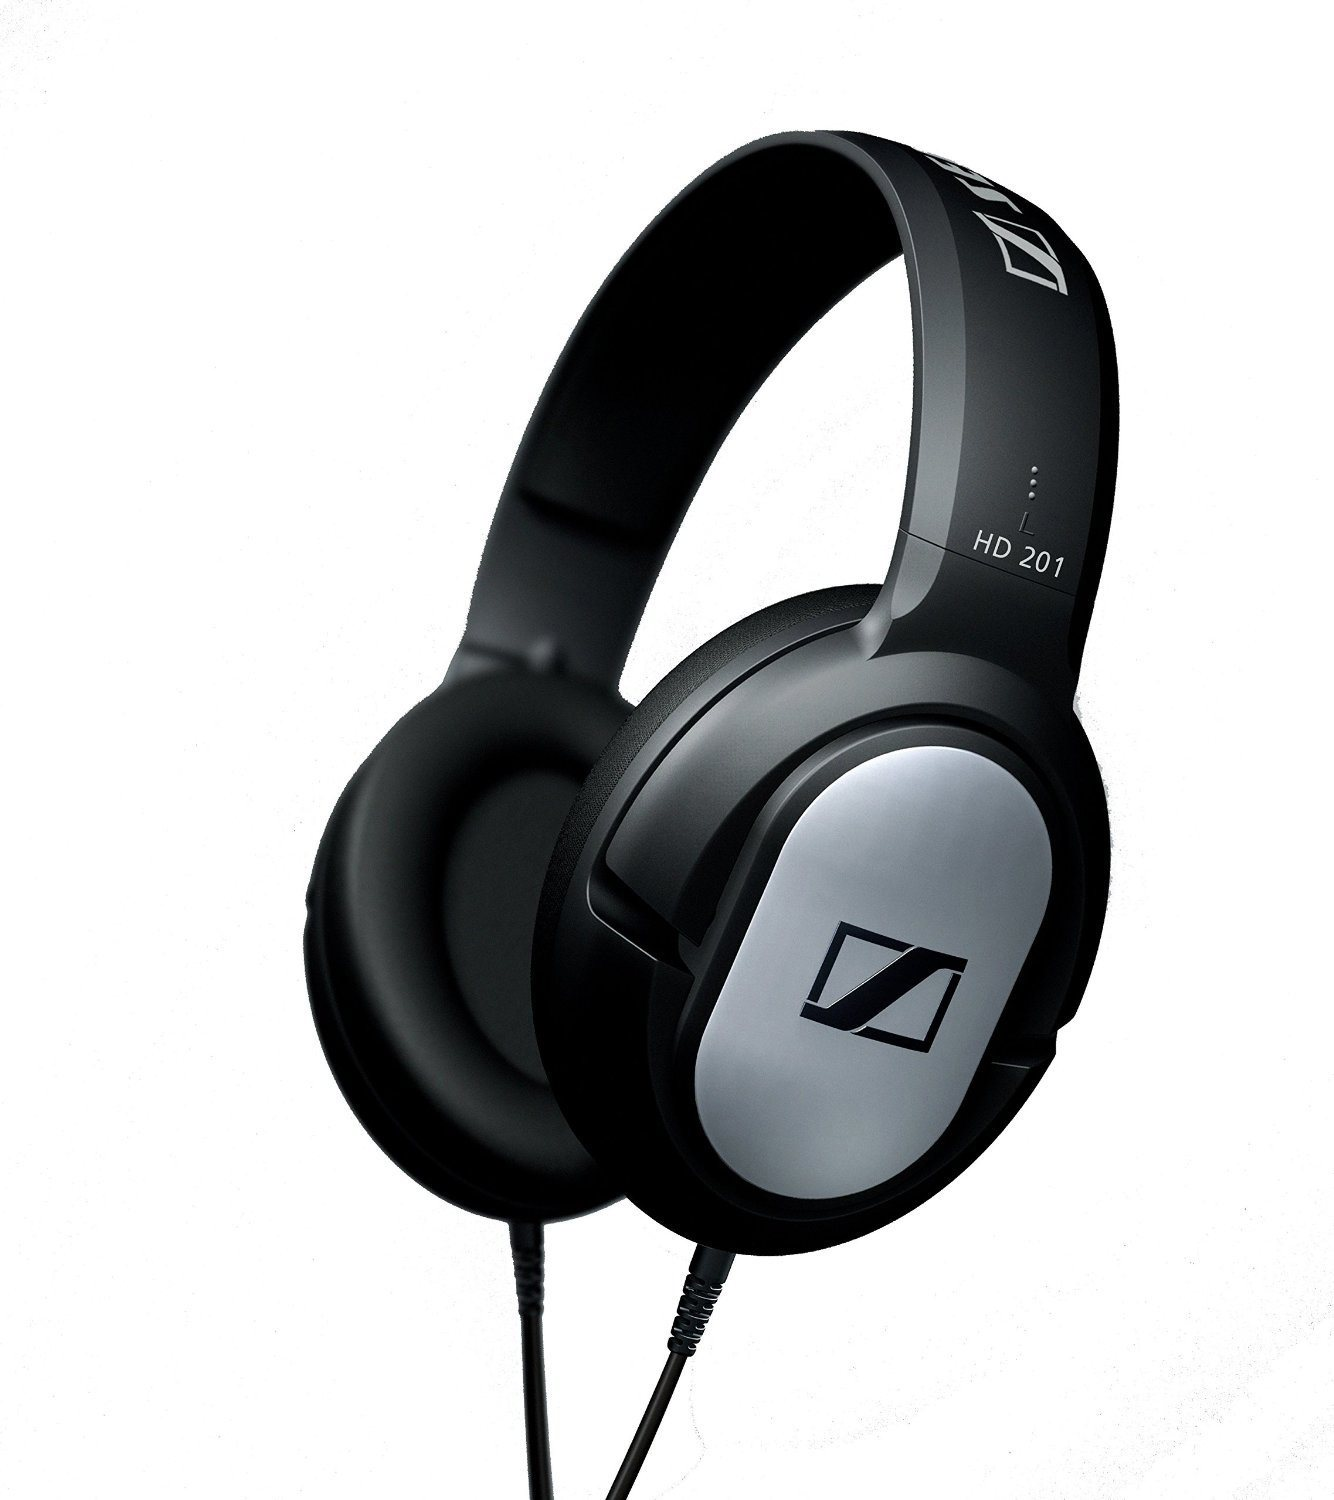 Sennheiser HD 201 Cuffie Stereo Mp3